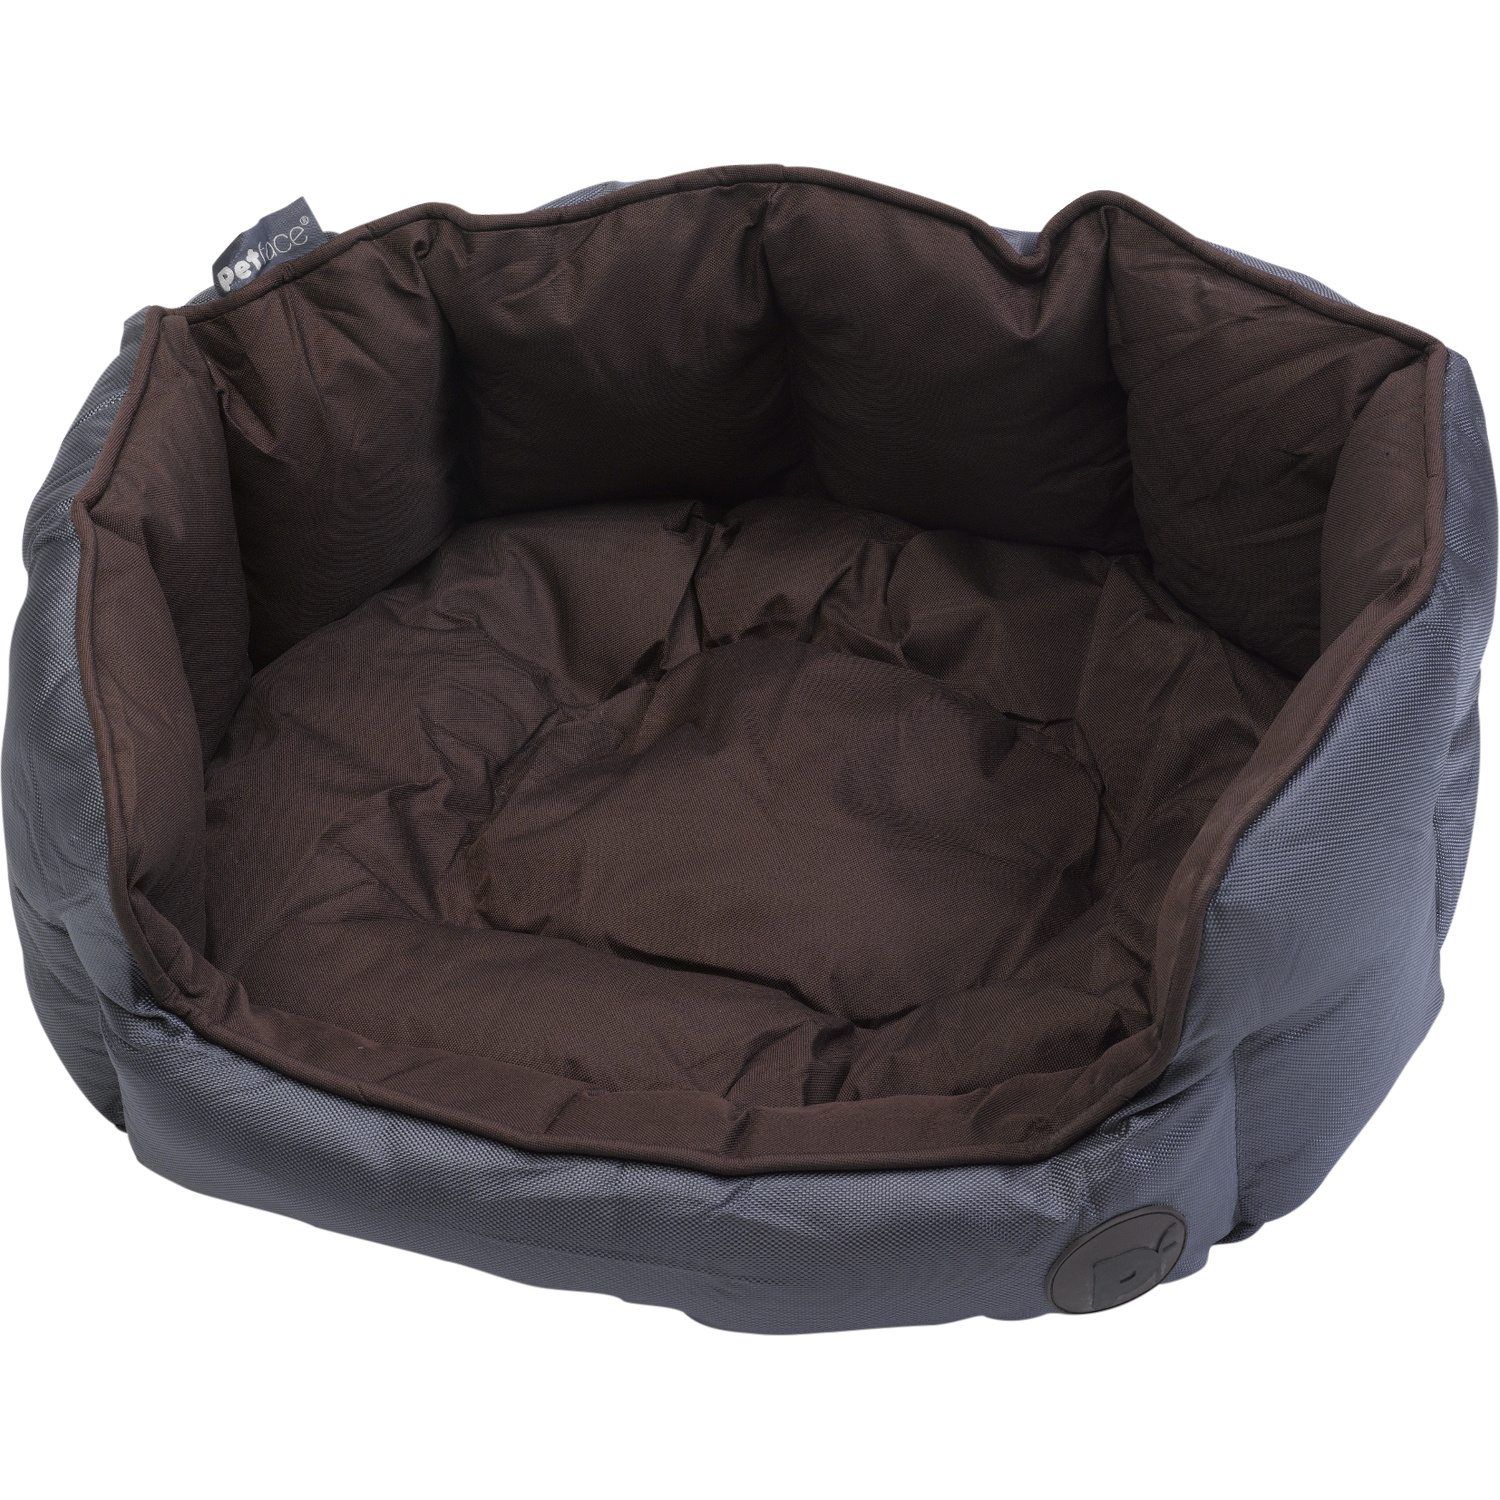 Petface Waterproof Oxford Pet Bed Puppy Dog Luxury Oval Or